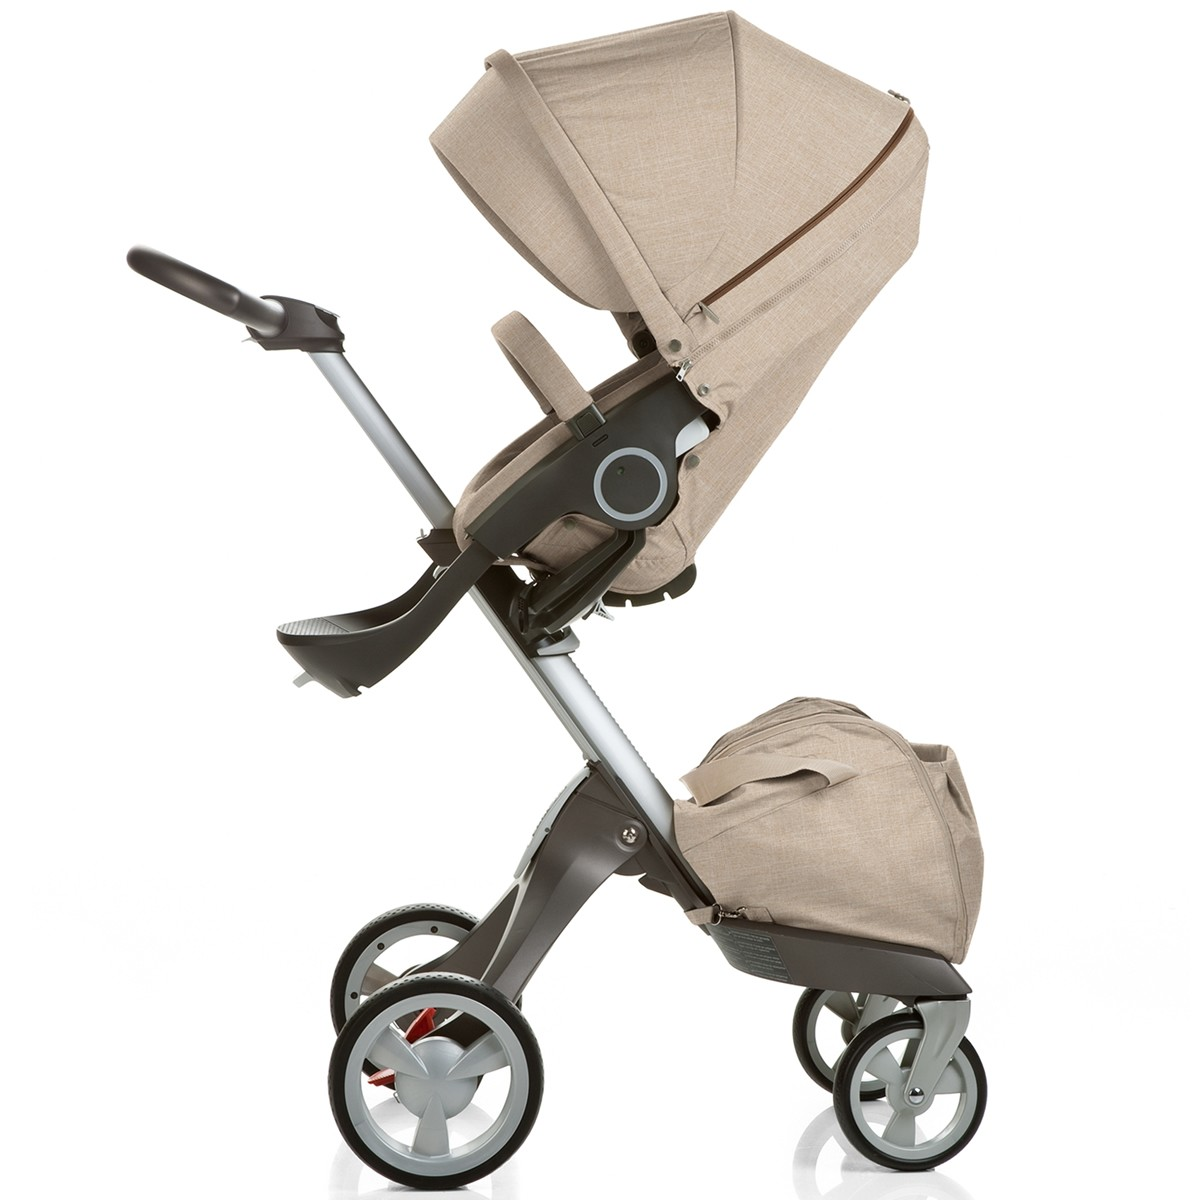 Stokke Maxi Cosi Car Seat Stokke Xplory V4 Stroller With Bassinet And Nuna Car Seat Travel System Beige Melange